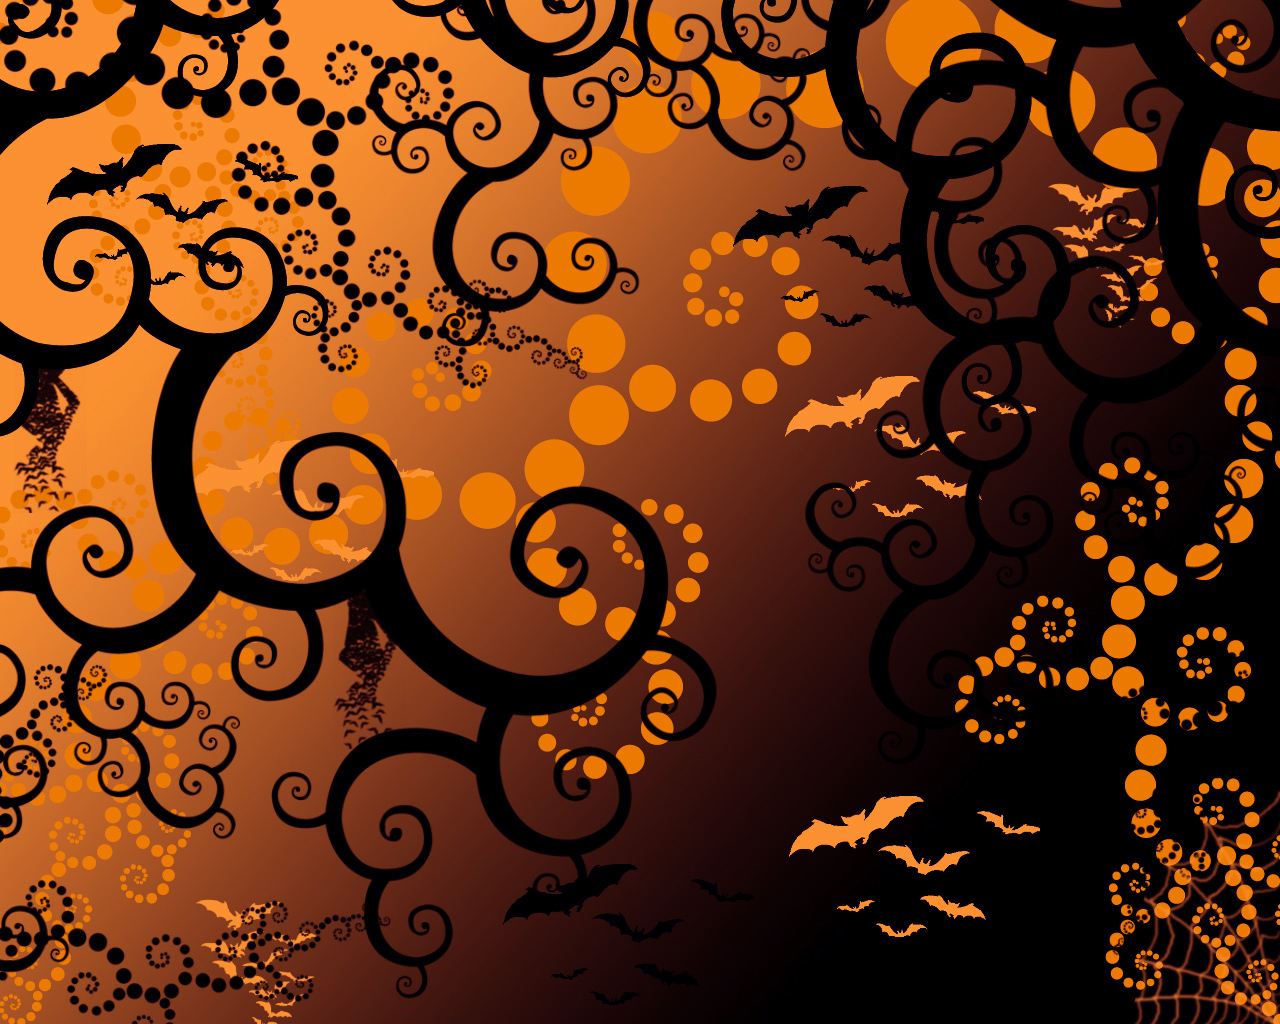 kane blog picz: Www.halloween Wallpaper.